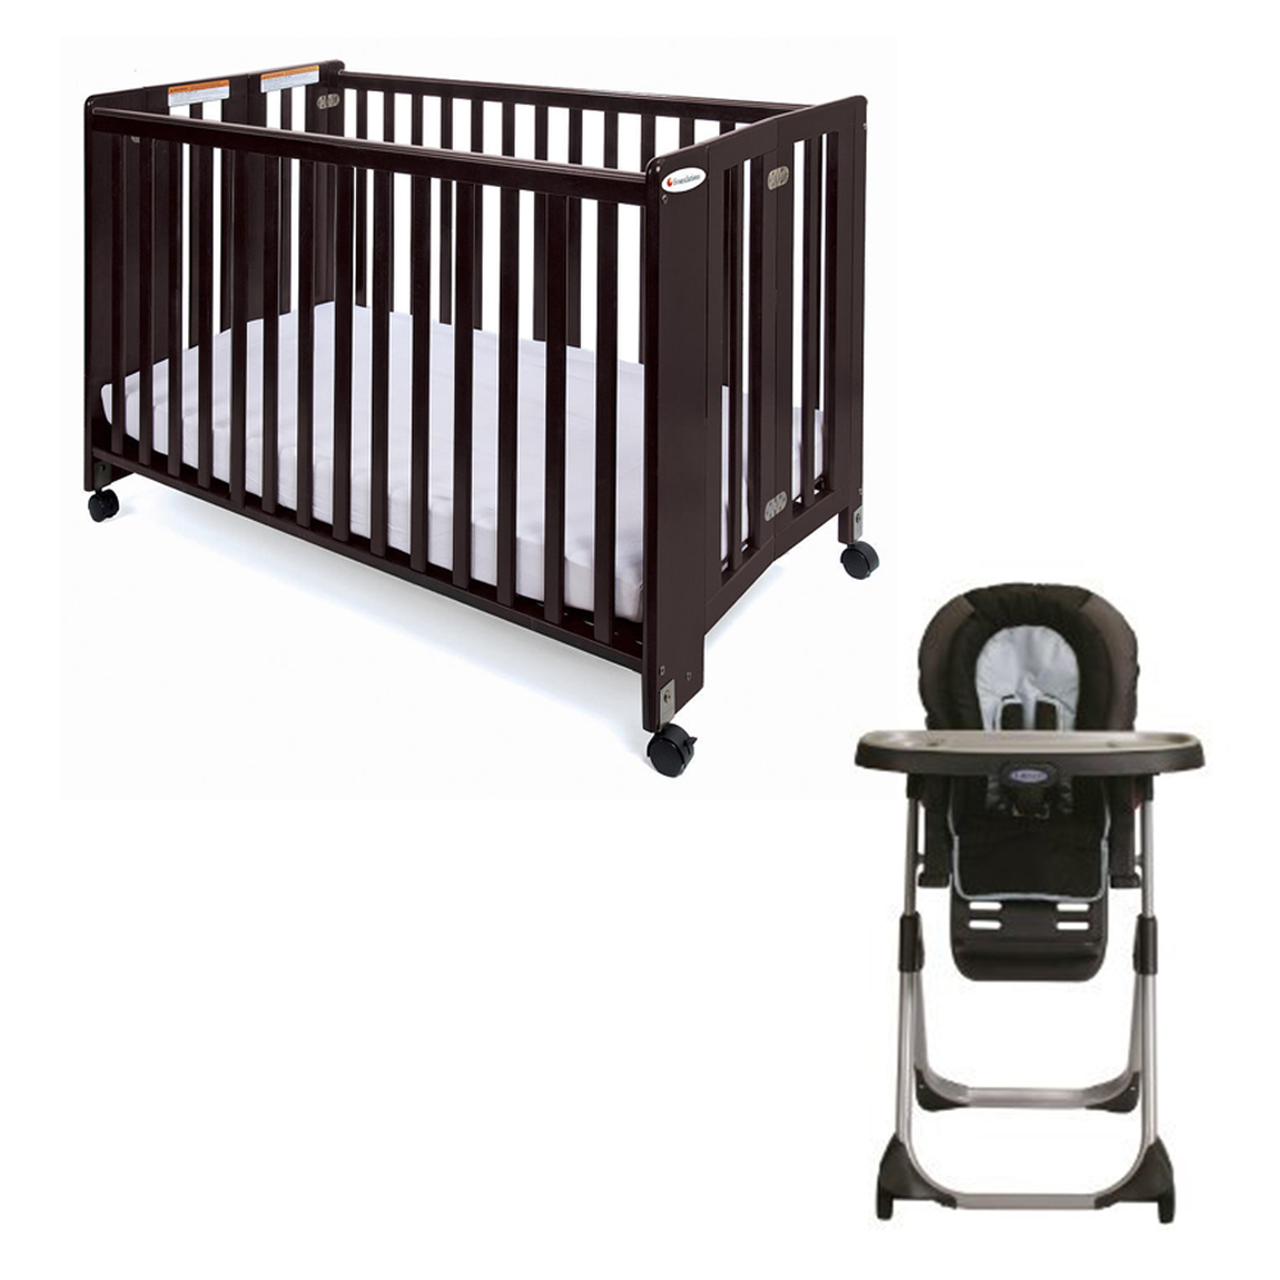 PACKAGE 3 (FULL CRIB)